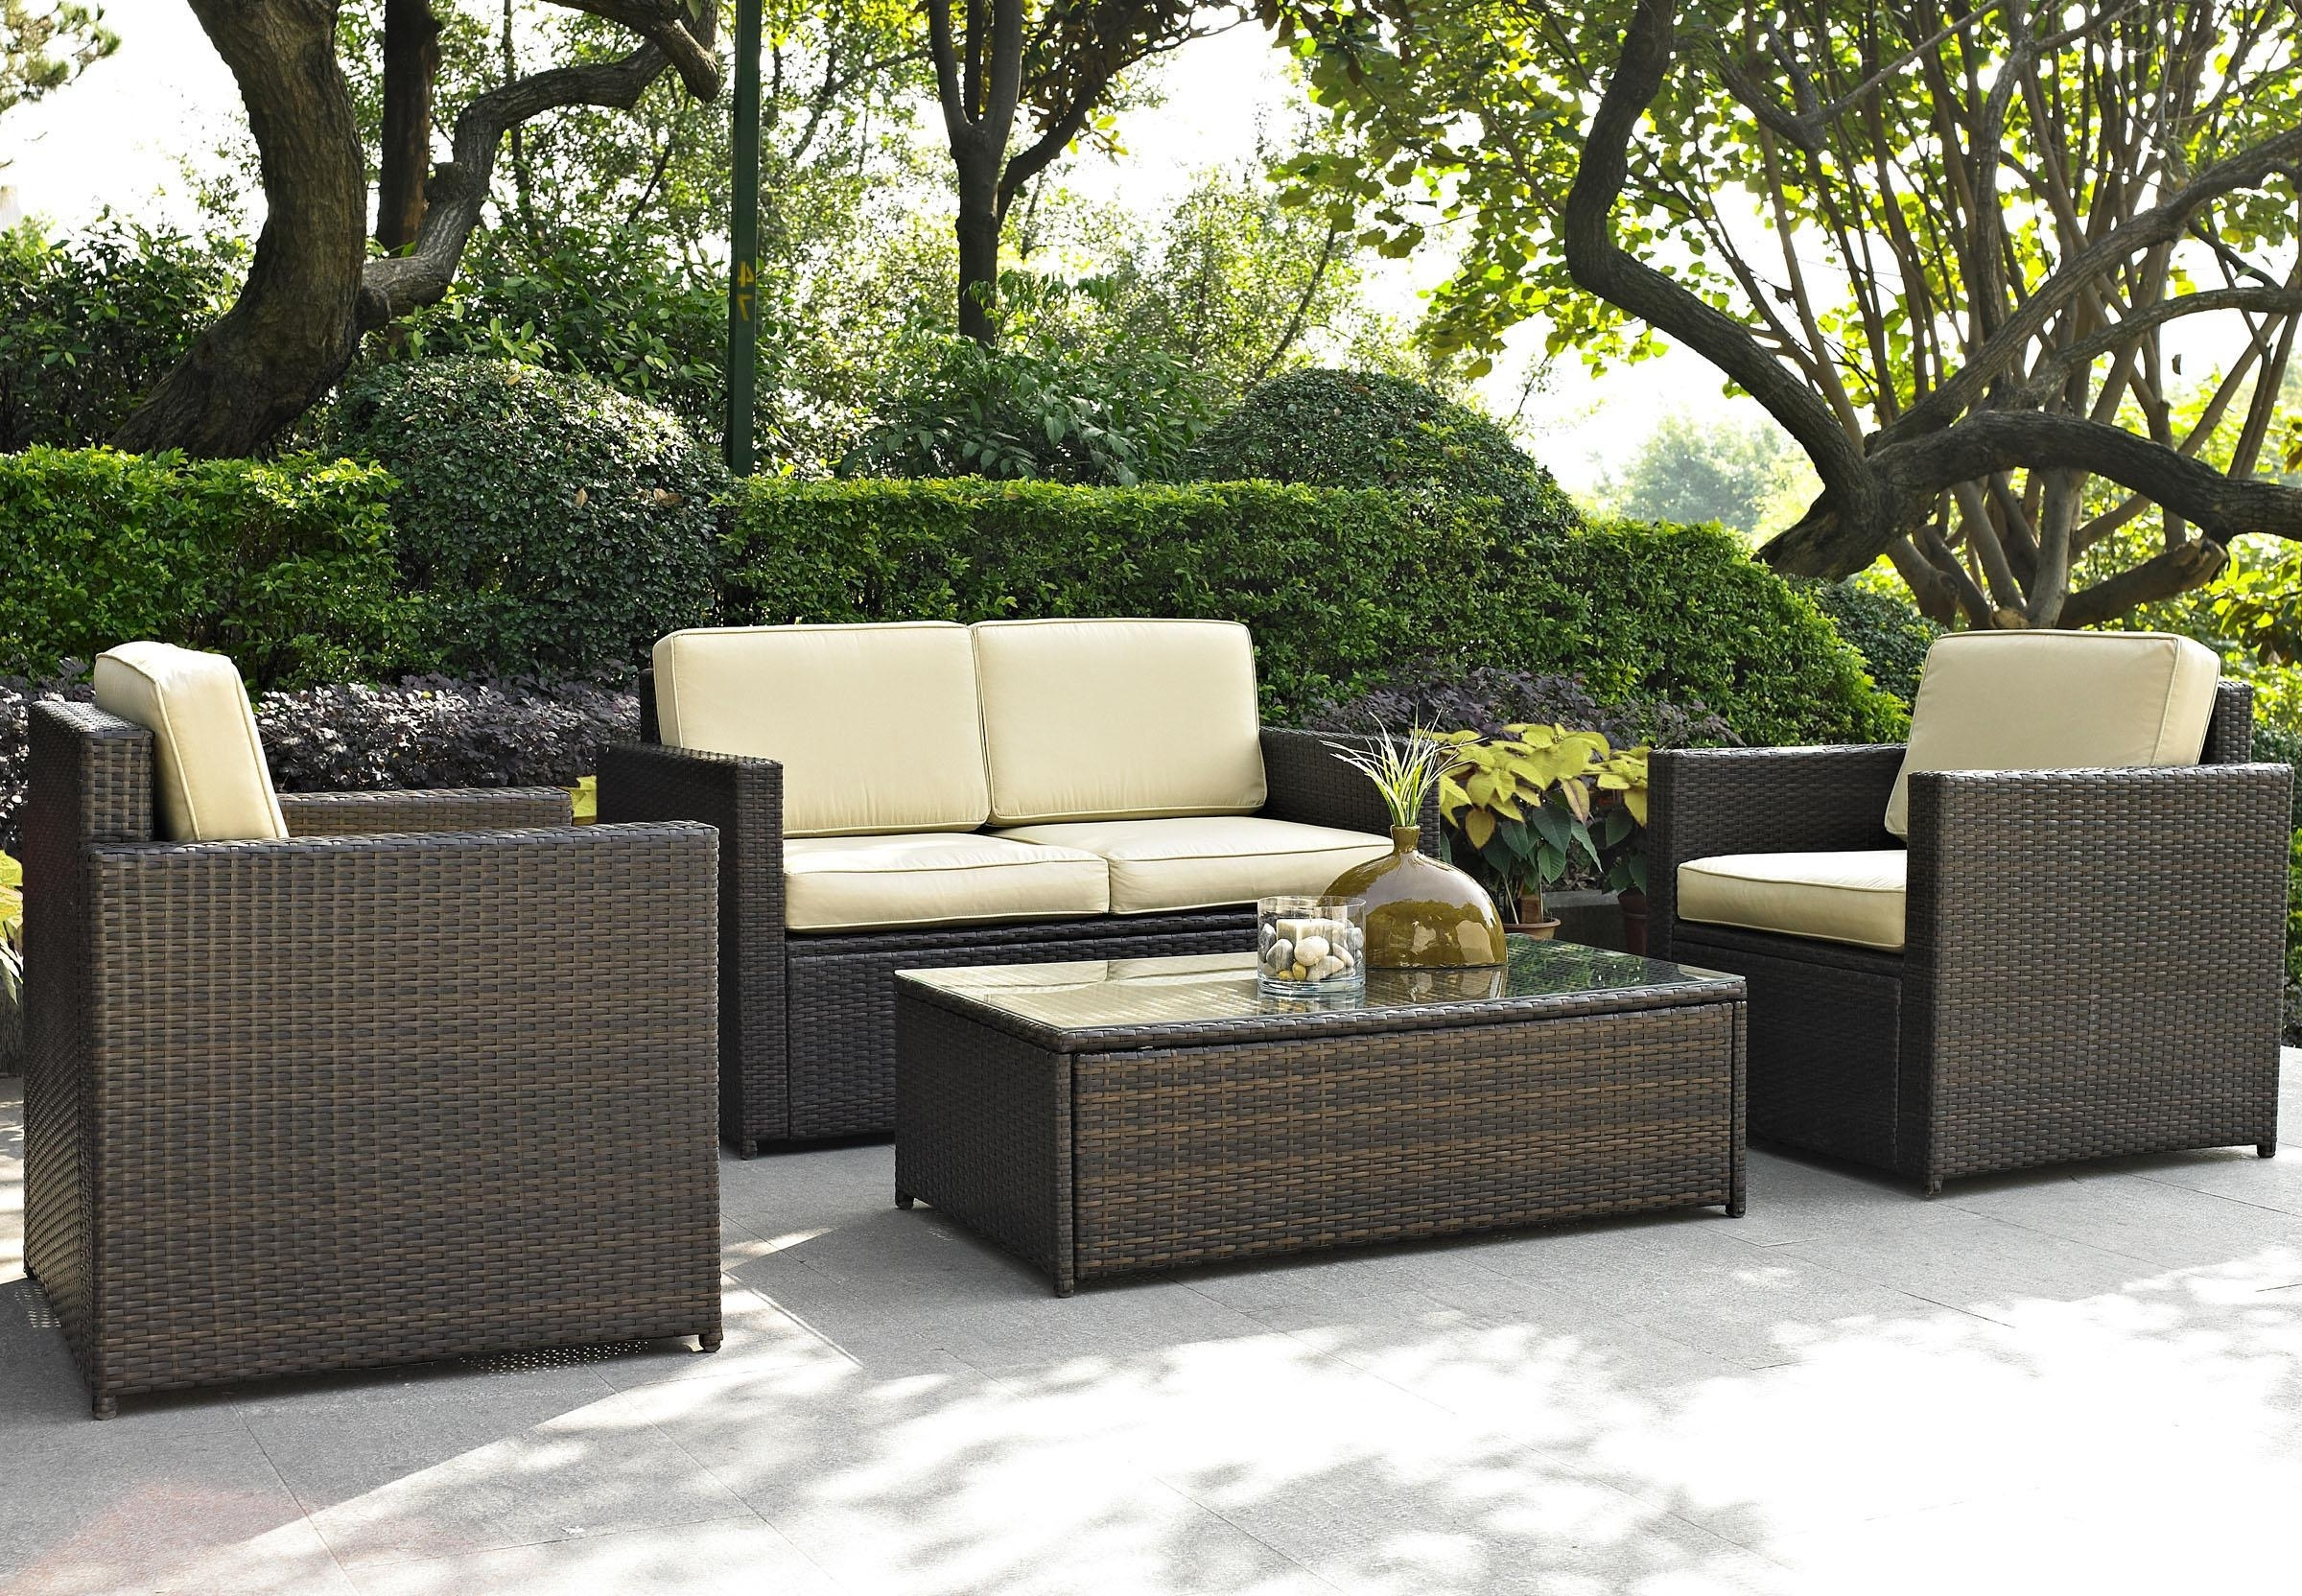 Patio Conversation Sets At Walmart For Favorite Furniture: Lovely Brown Wicker Chair Outdoor Furniture Design (View 8 of 20)